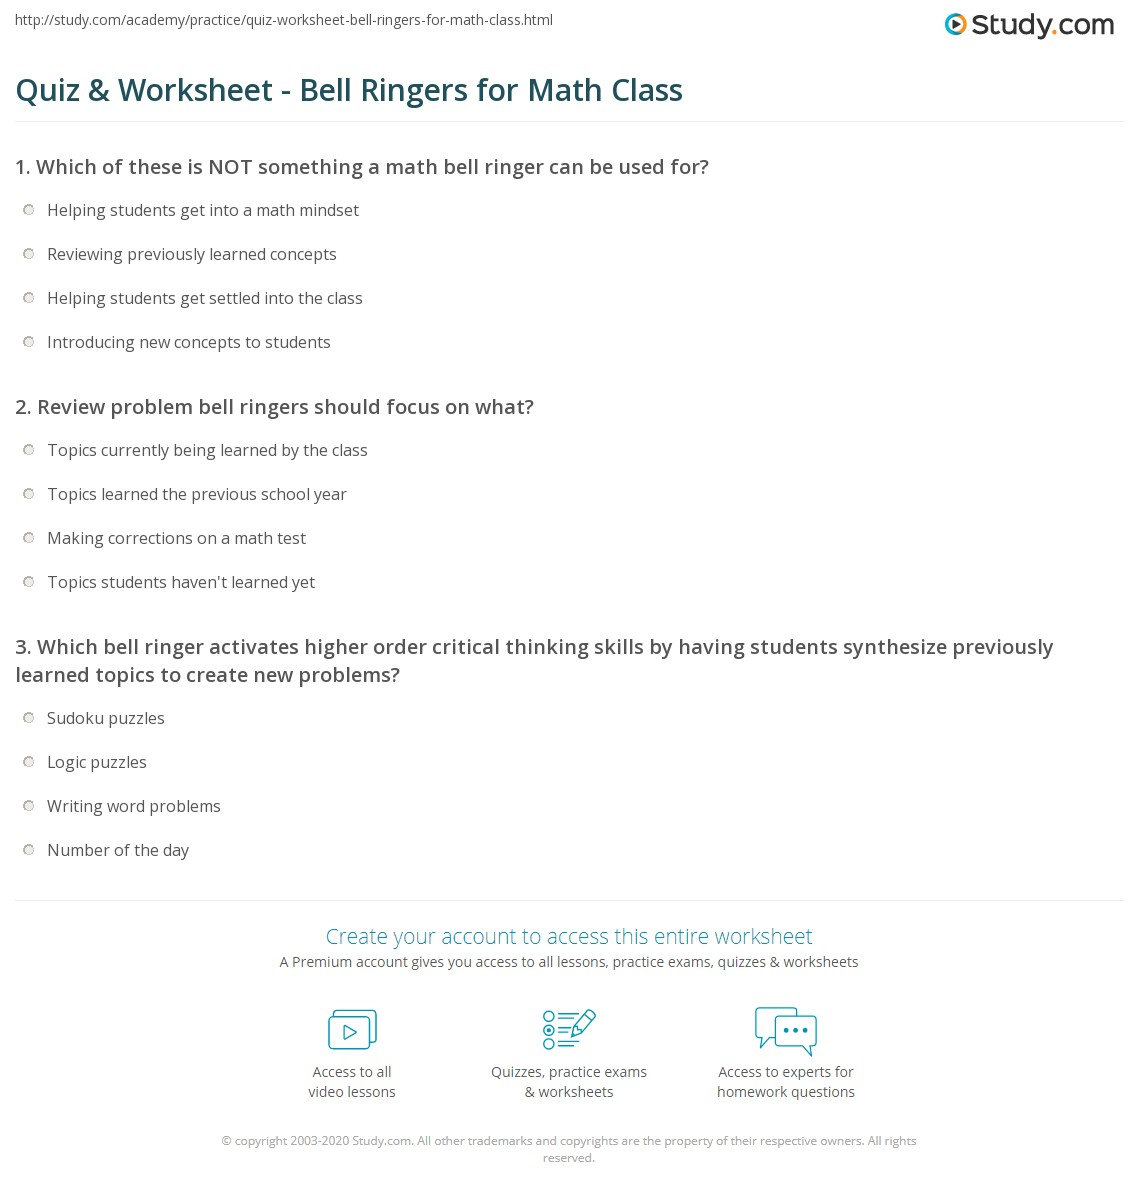 Quiz & Worksheet - Bell Ringers for Math Class | Study.com